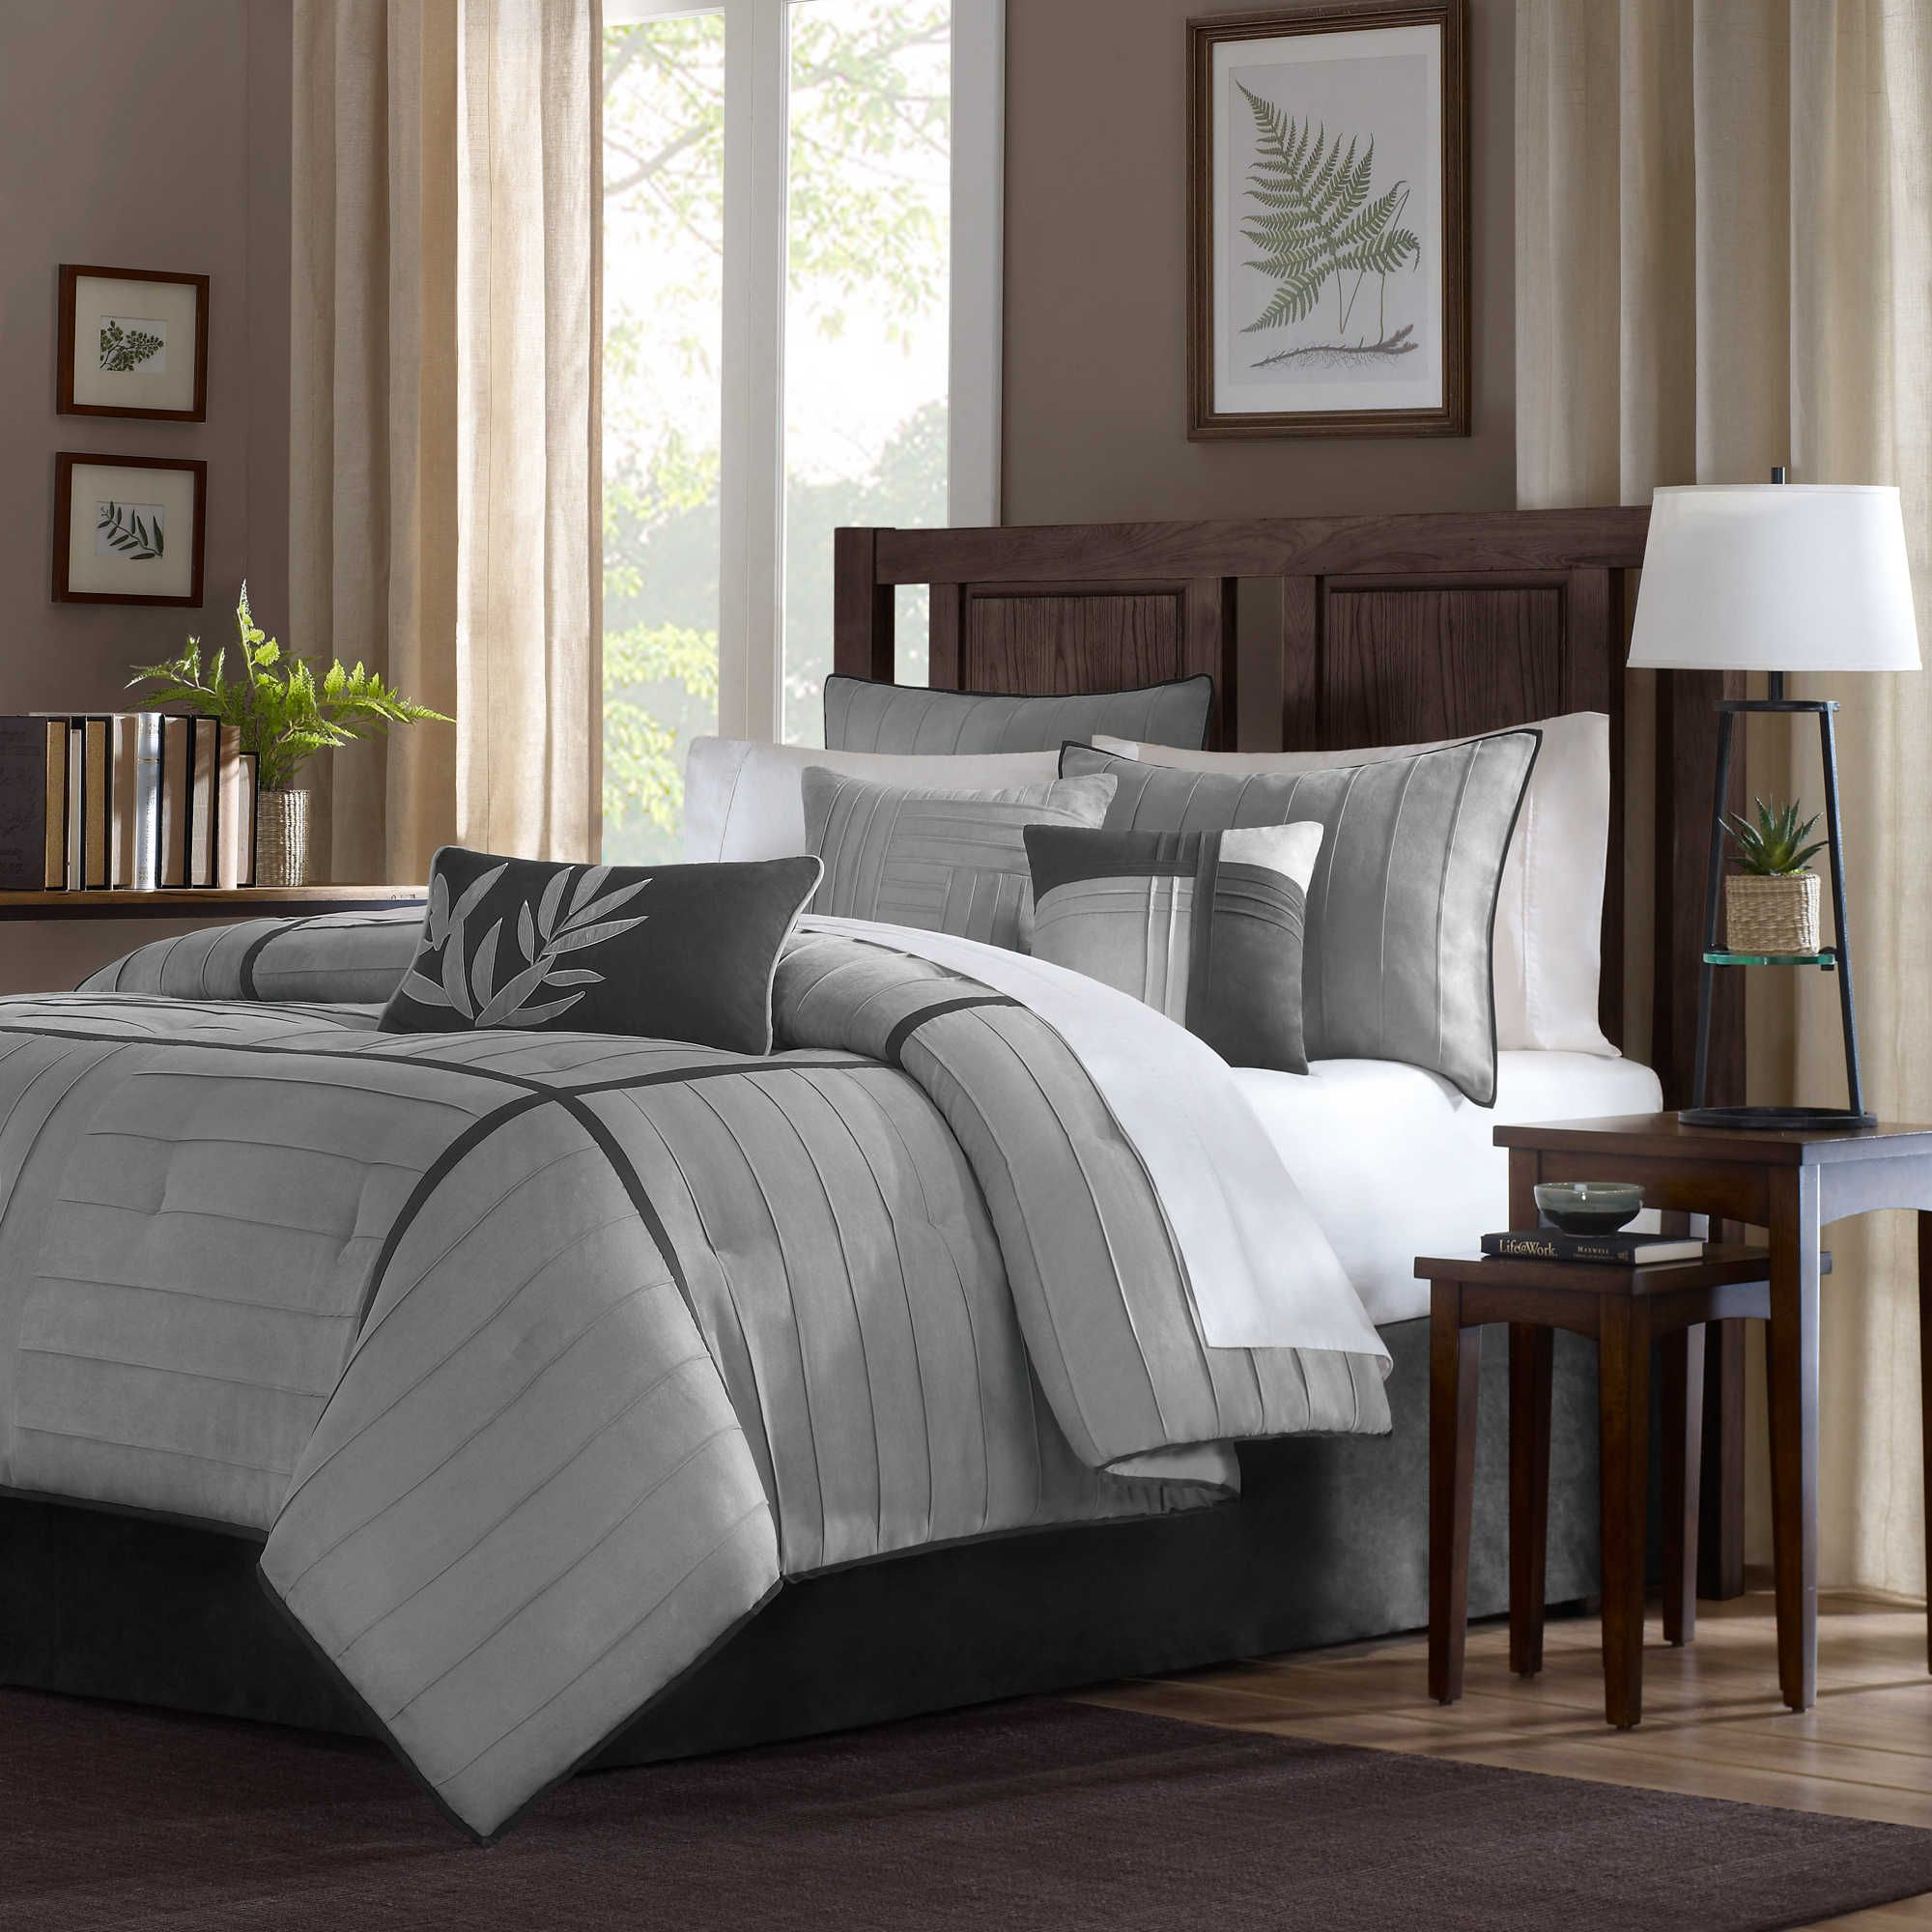 Madison Park Connell 6 Piece Duvet Cover Set In Grey New Home